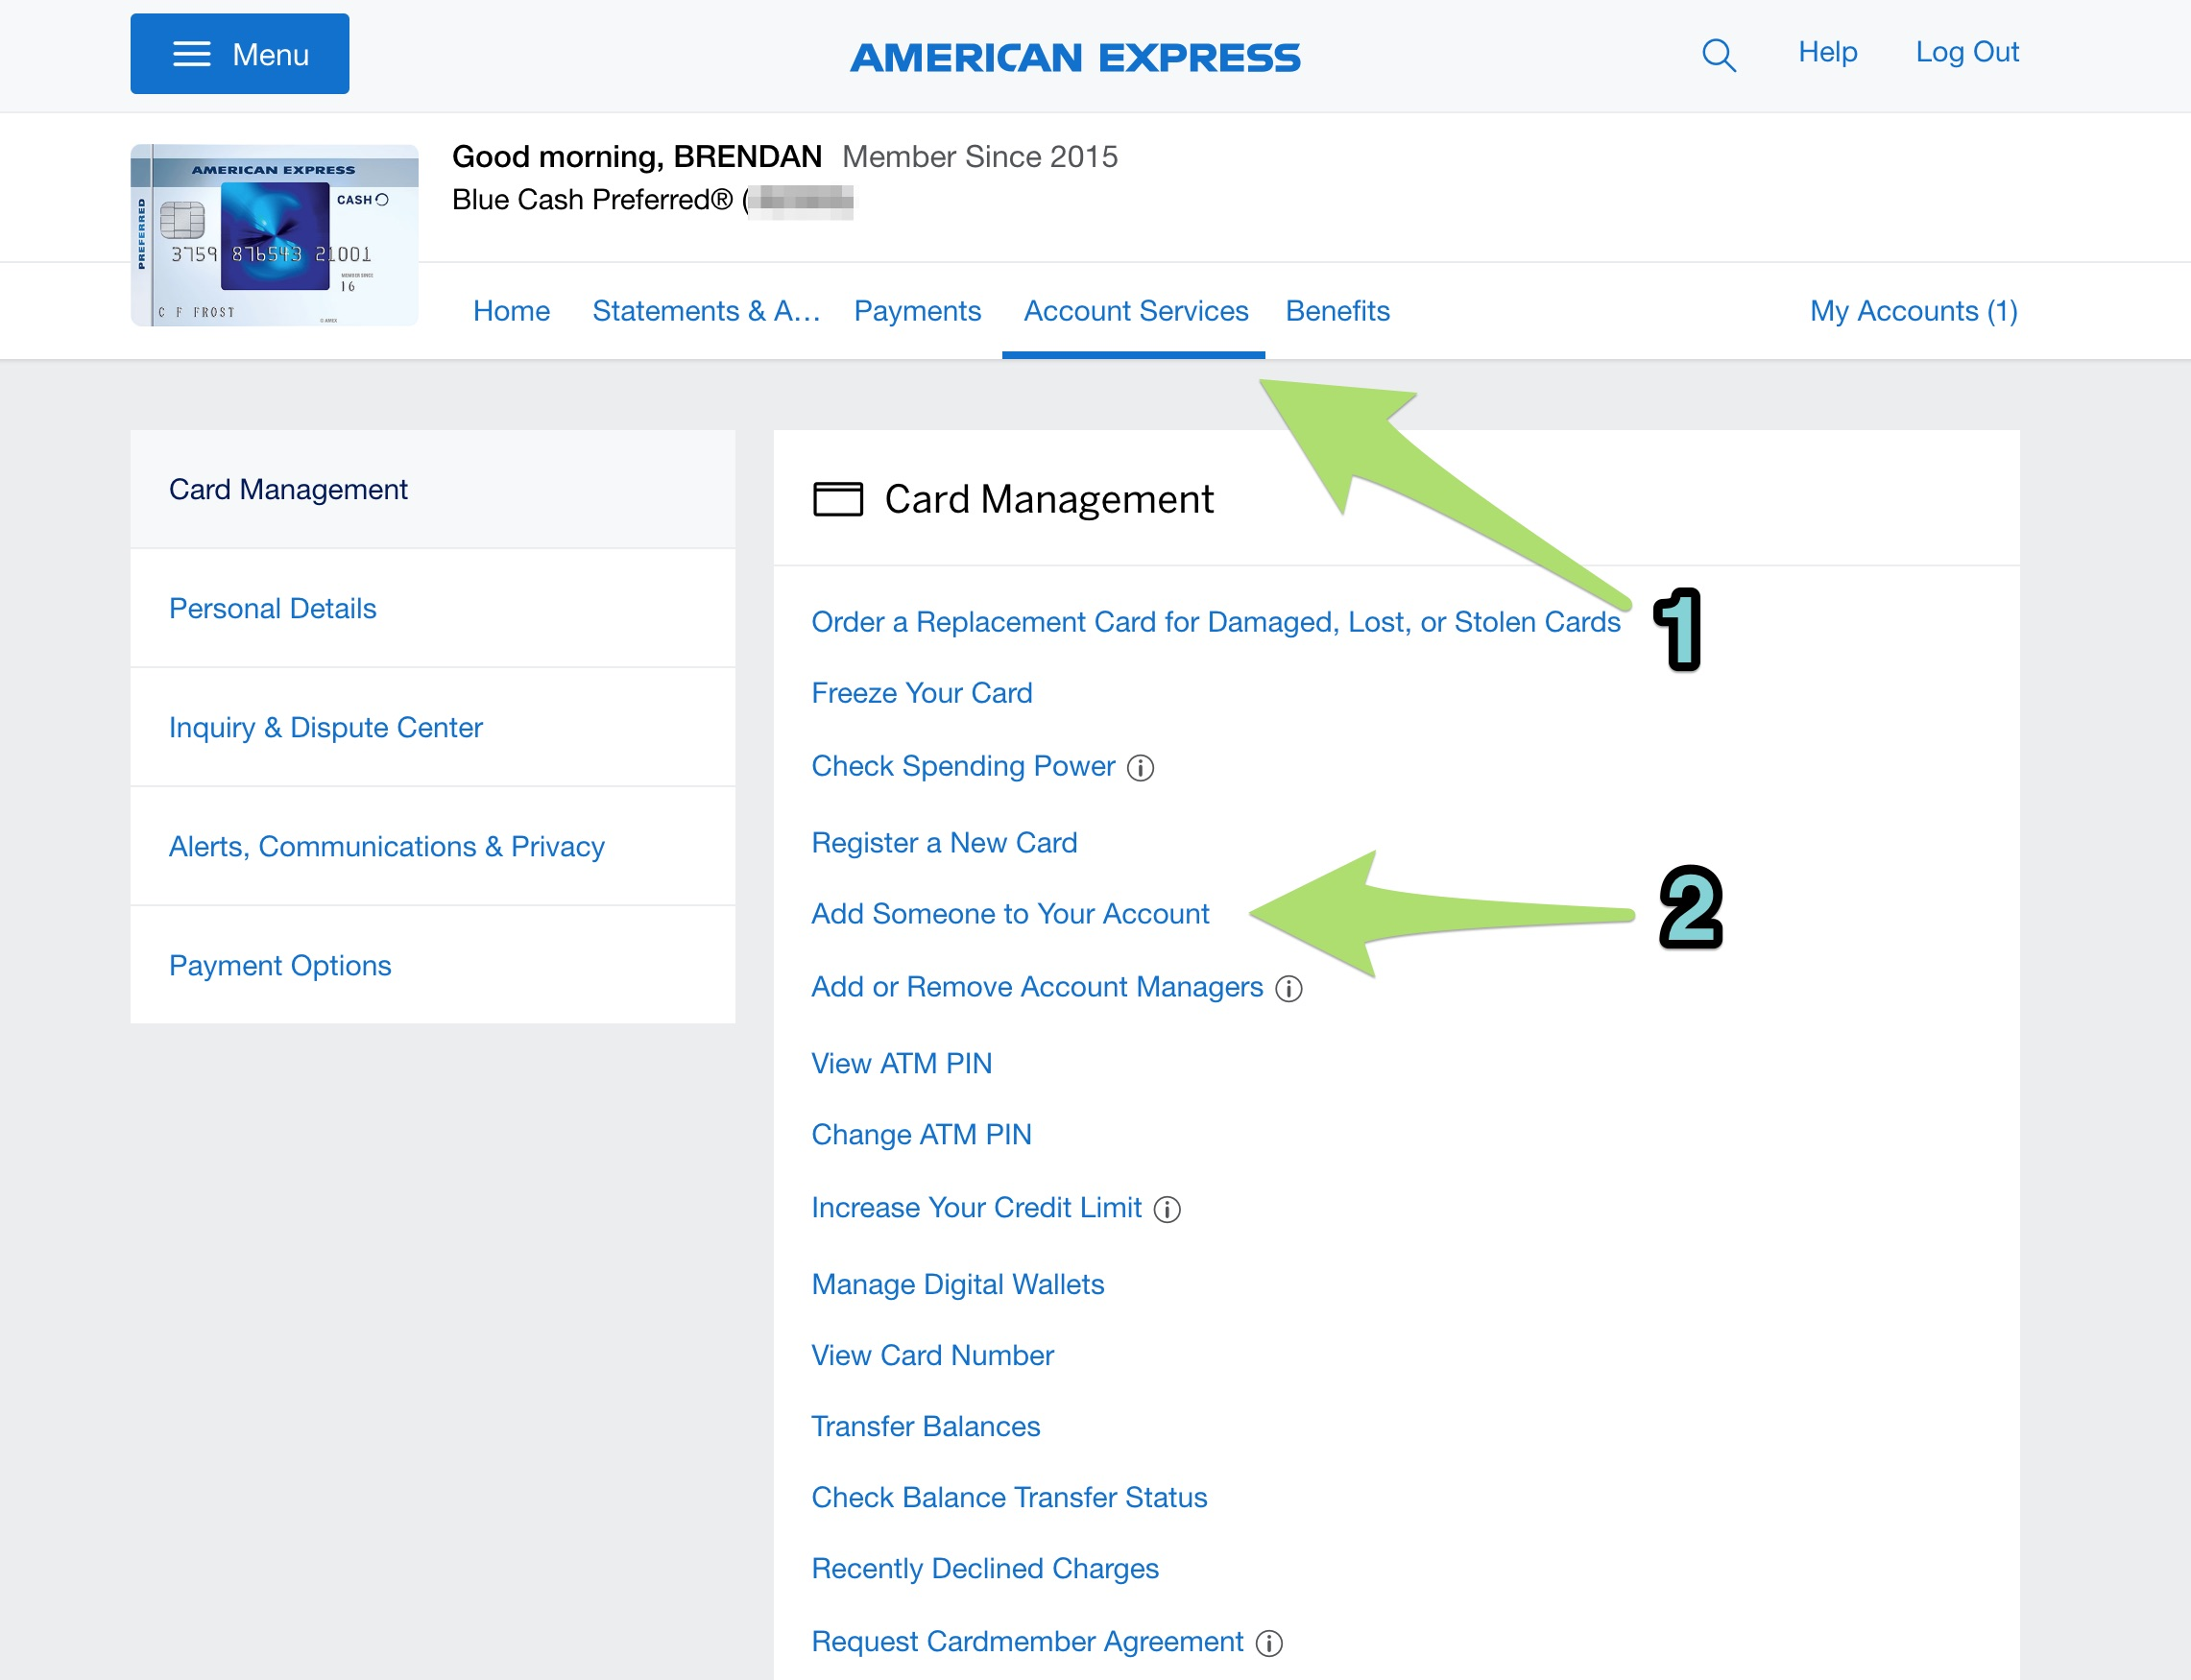 Adding an authorized user for an Amex card.